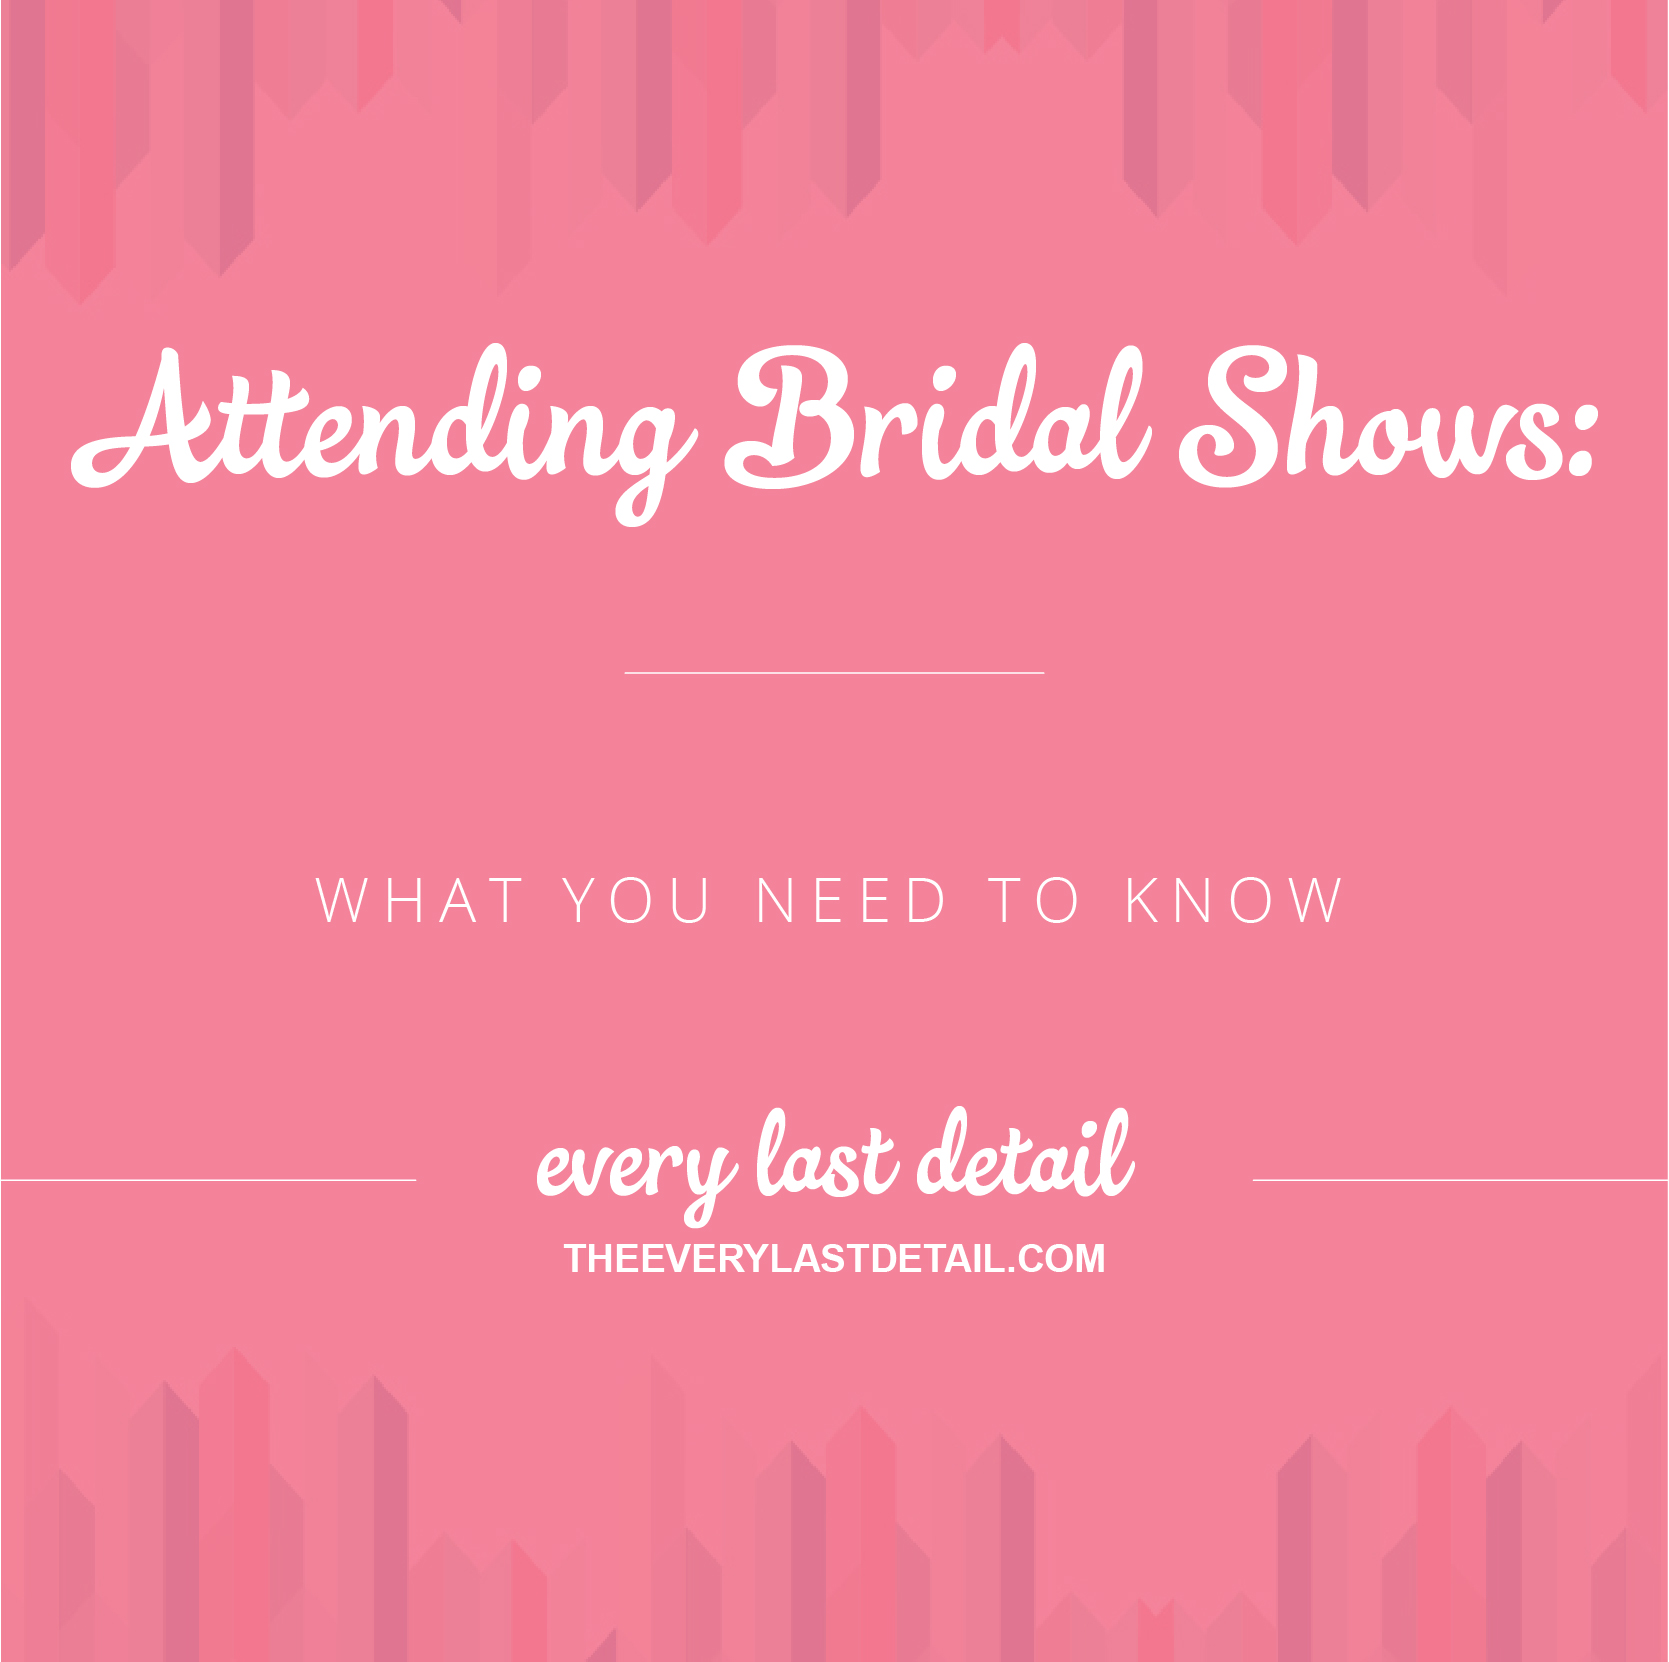 Attending Bridal Shows: What You Need To Know via TheELD.com